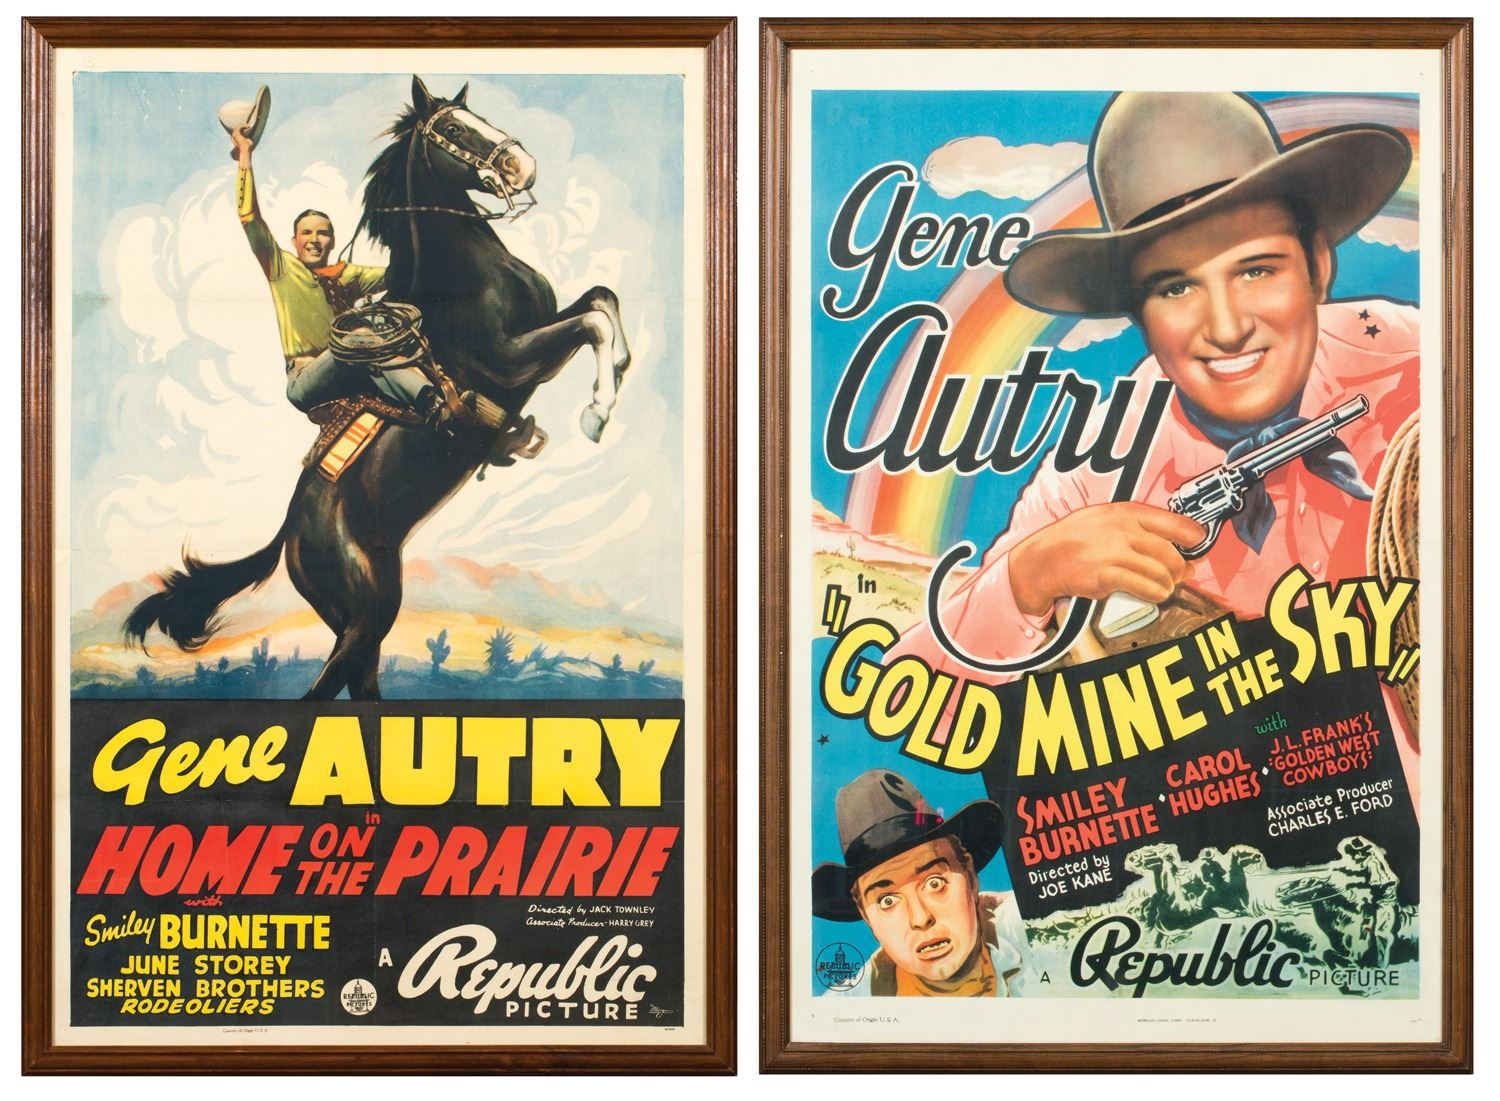 Gene Autry Vintage-Style Western 12x18 Movie Poster 1939 Home on the Prairie